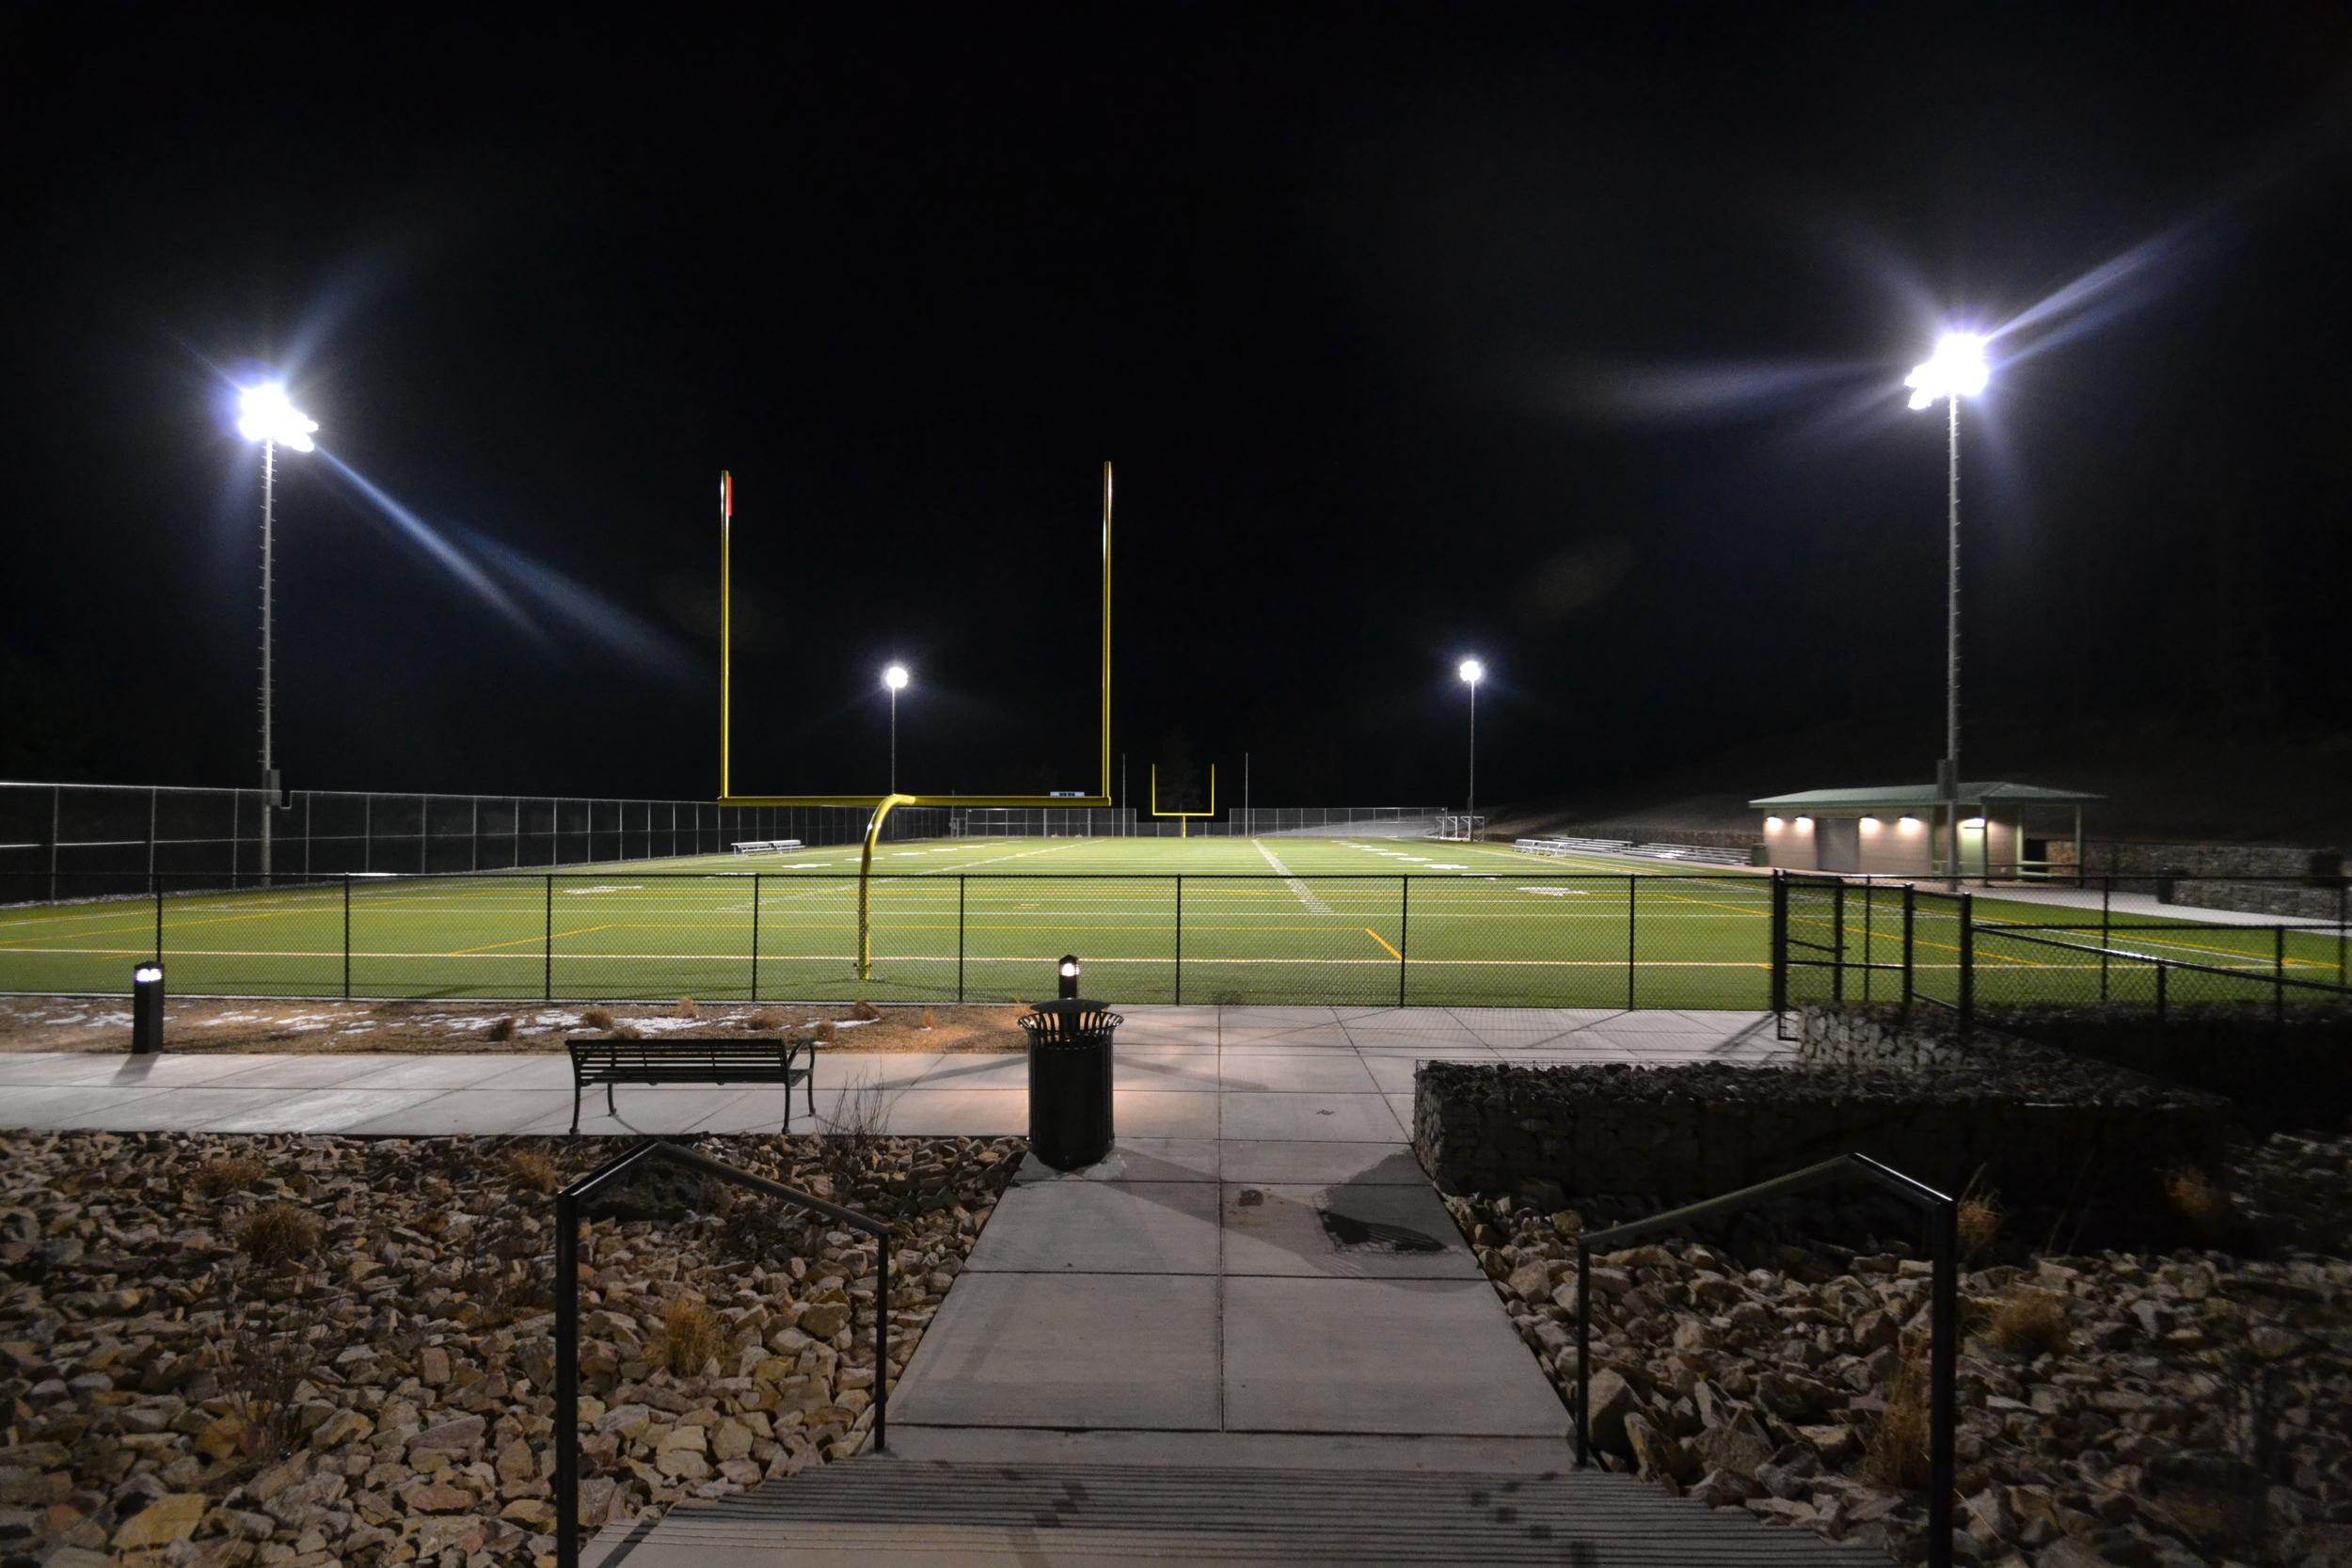 Artificial turf athletic field with night lighting